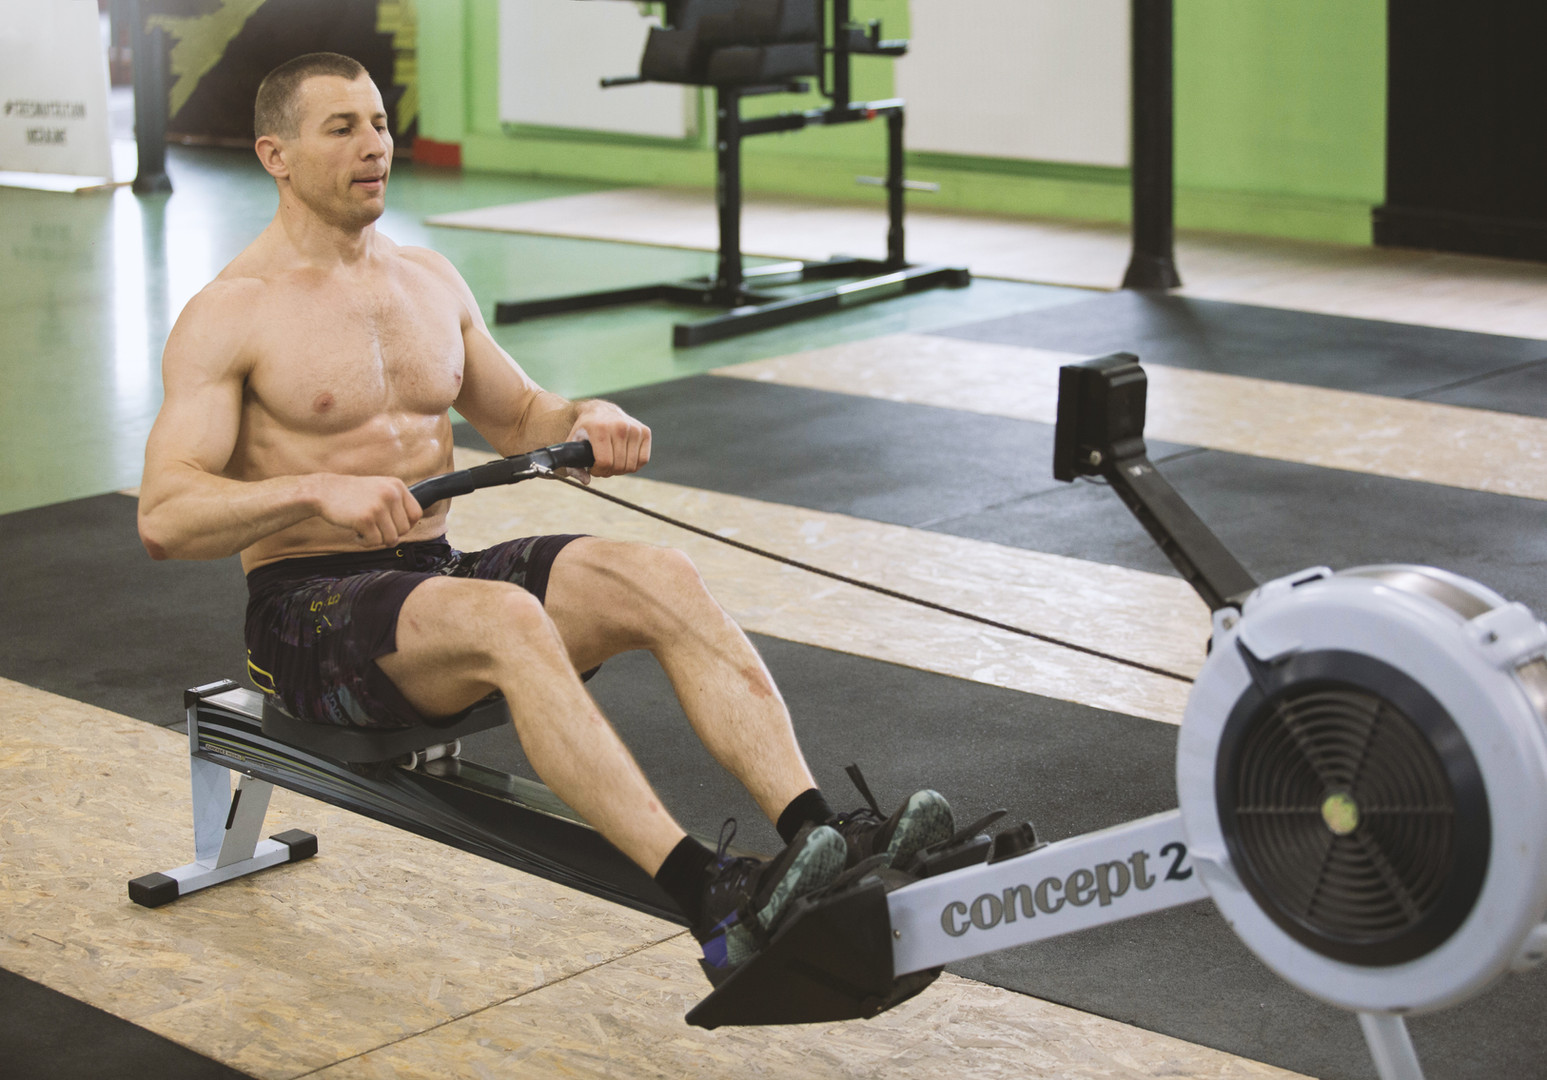 Man Working Out on a Machine